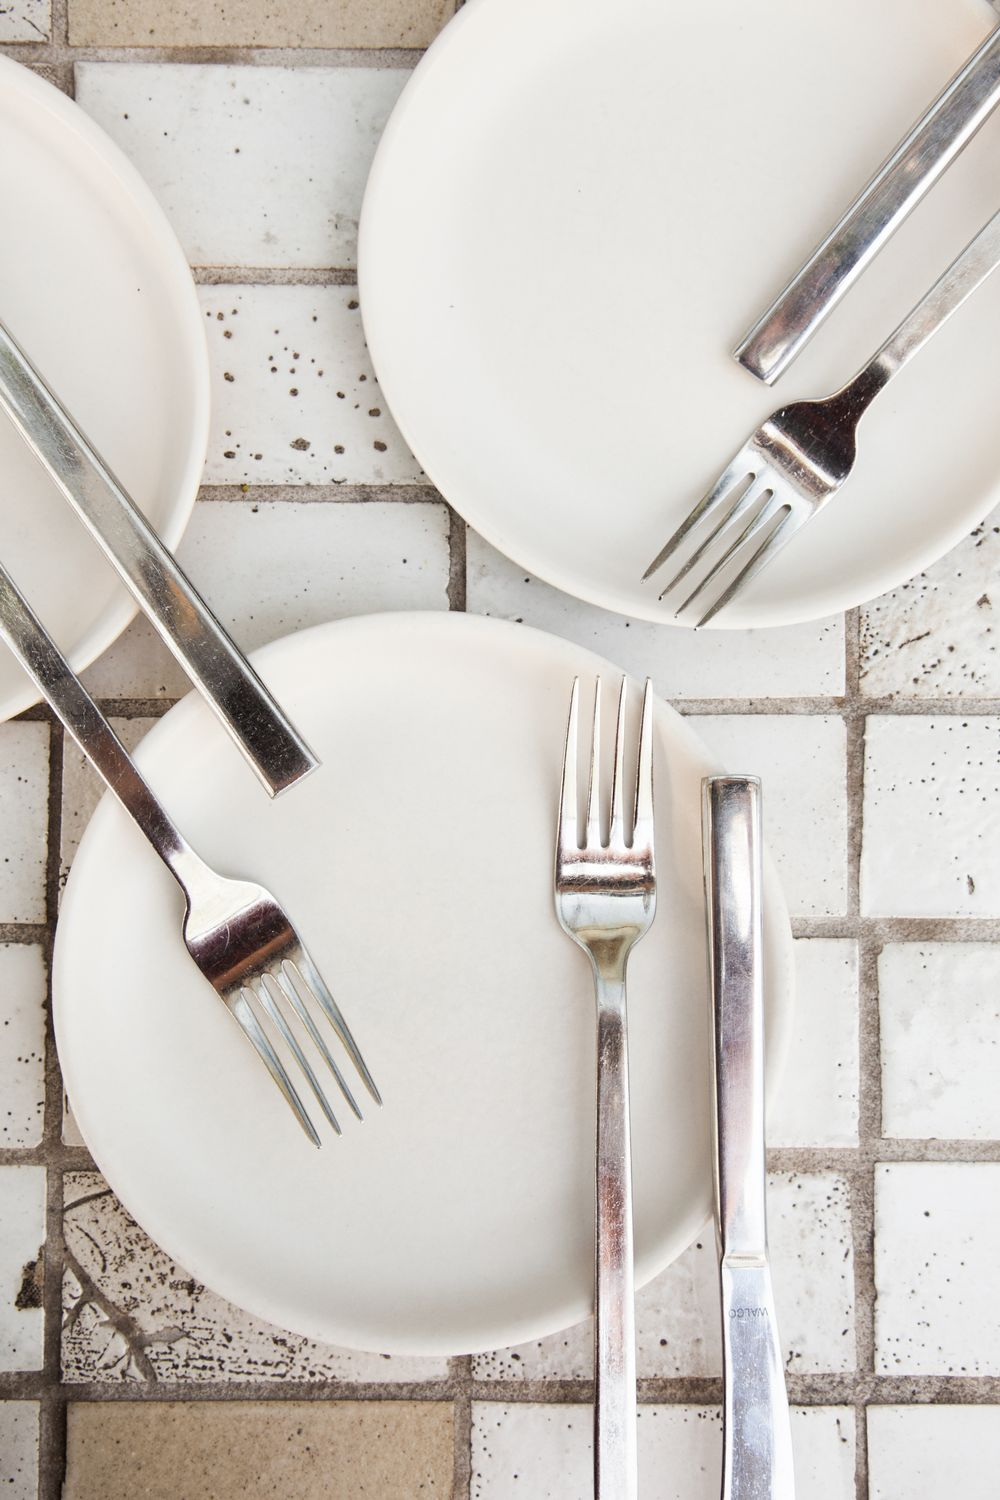 graphic minimal white plates with forks on white brick in restaurant